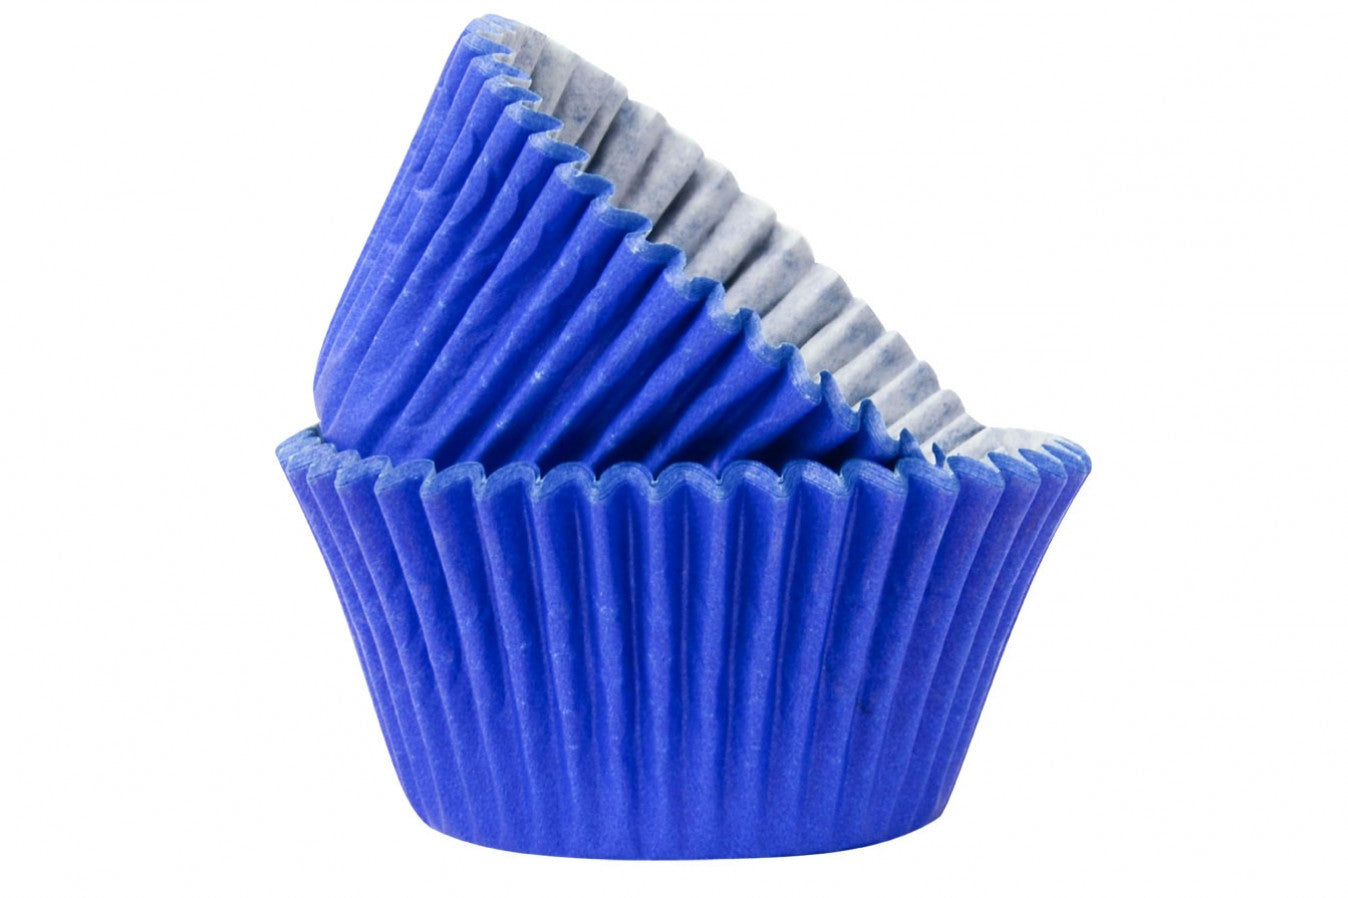 Professional Quality Cupcake Cases: Dark Blue 50pk